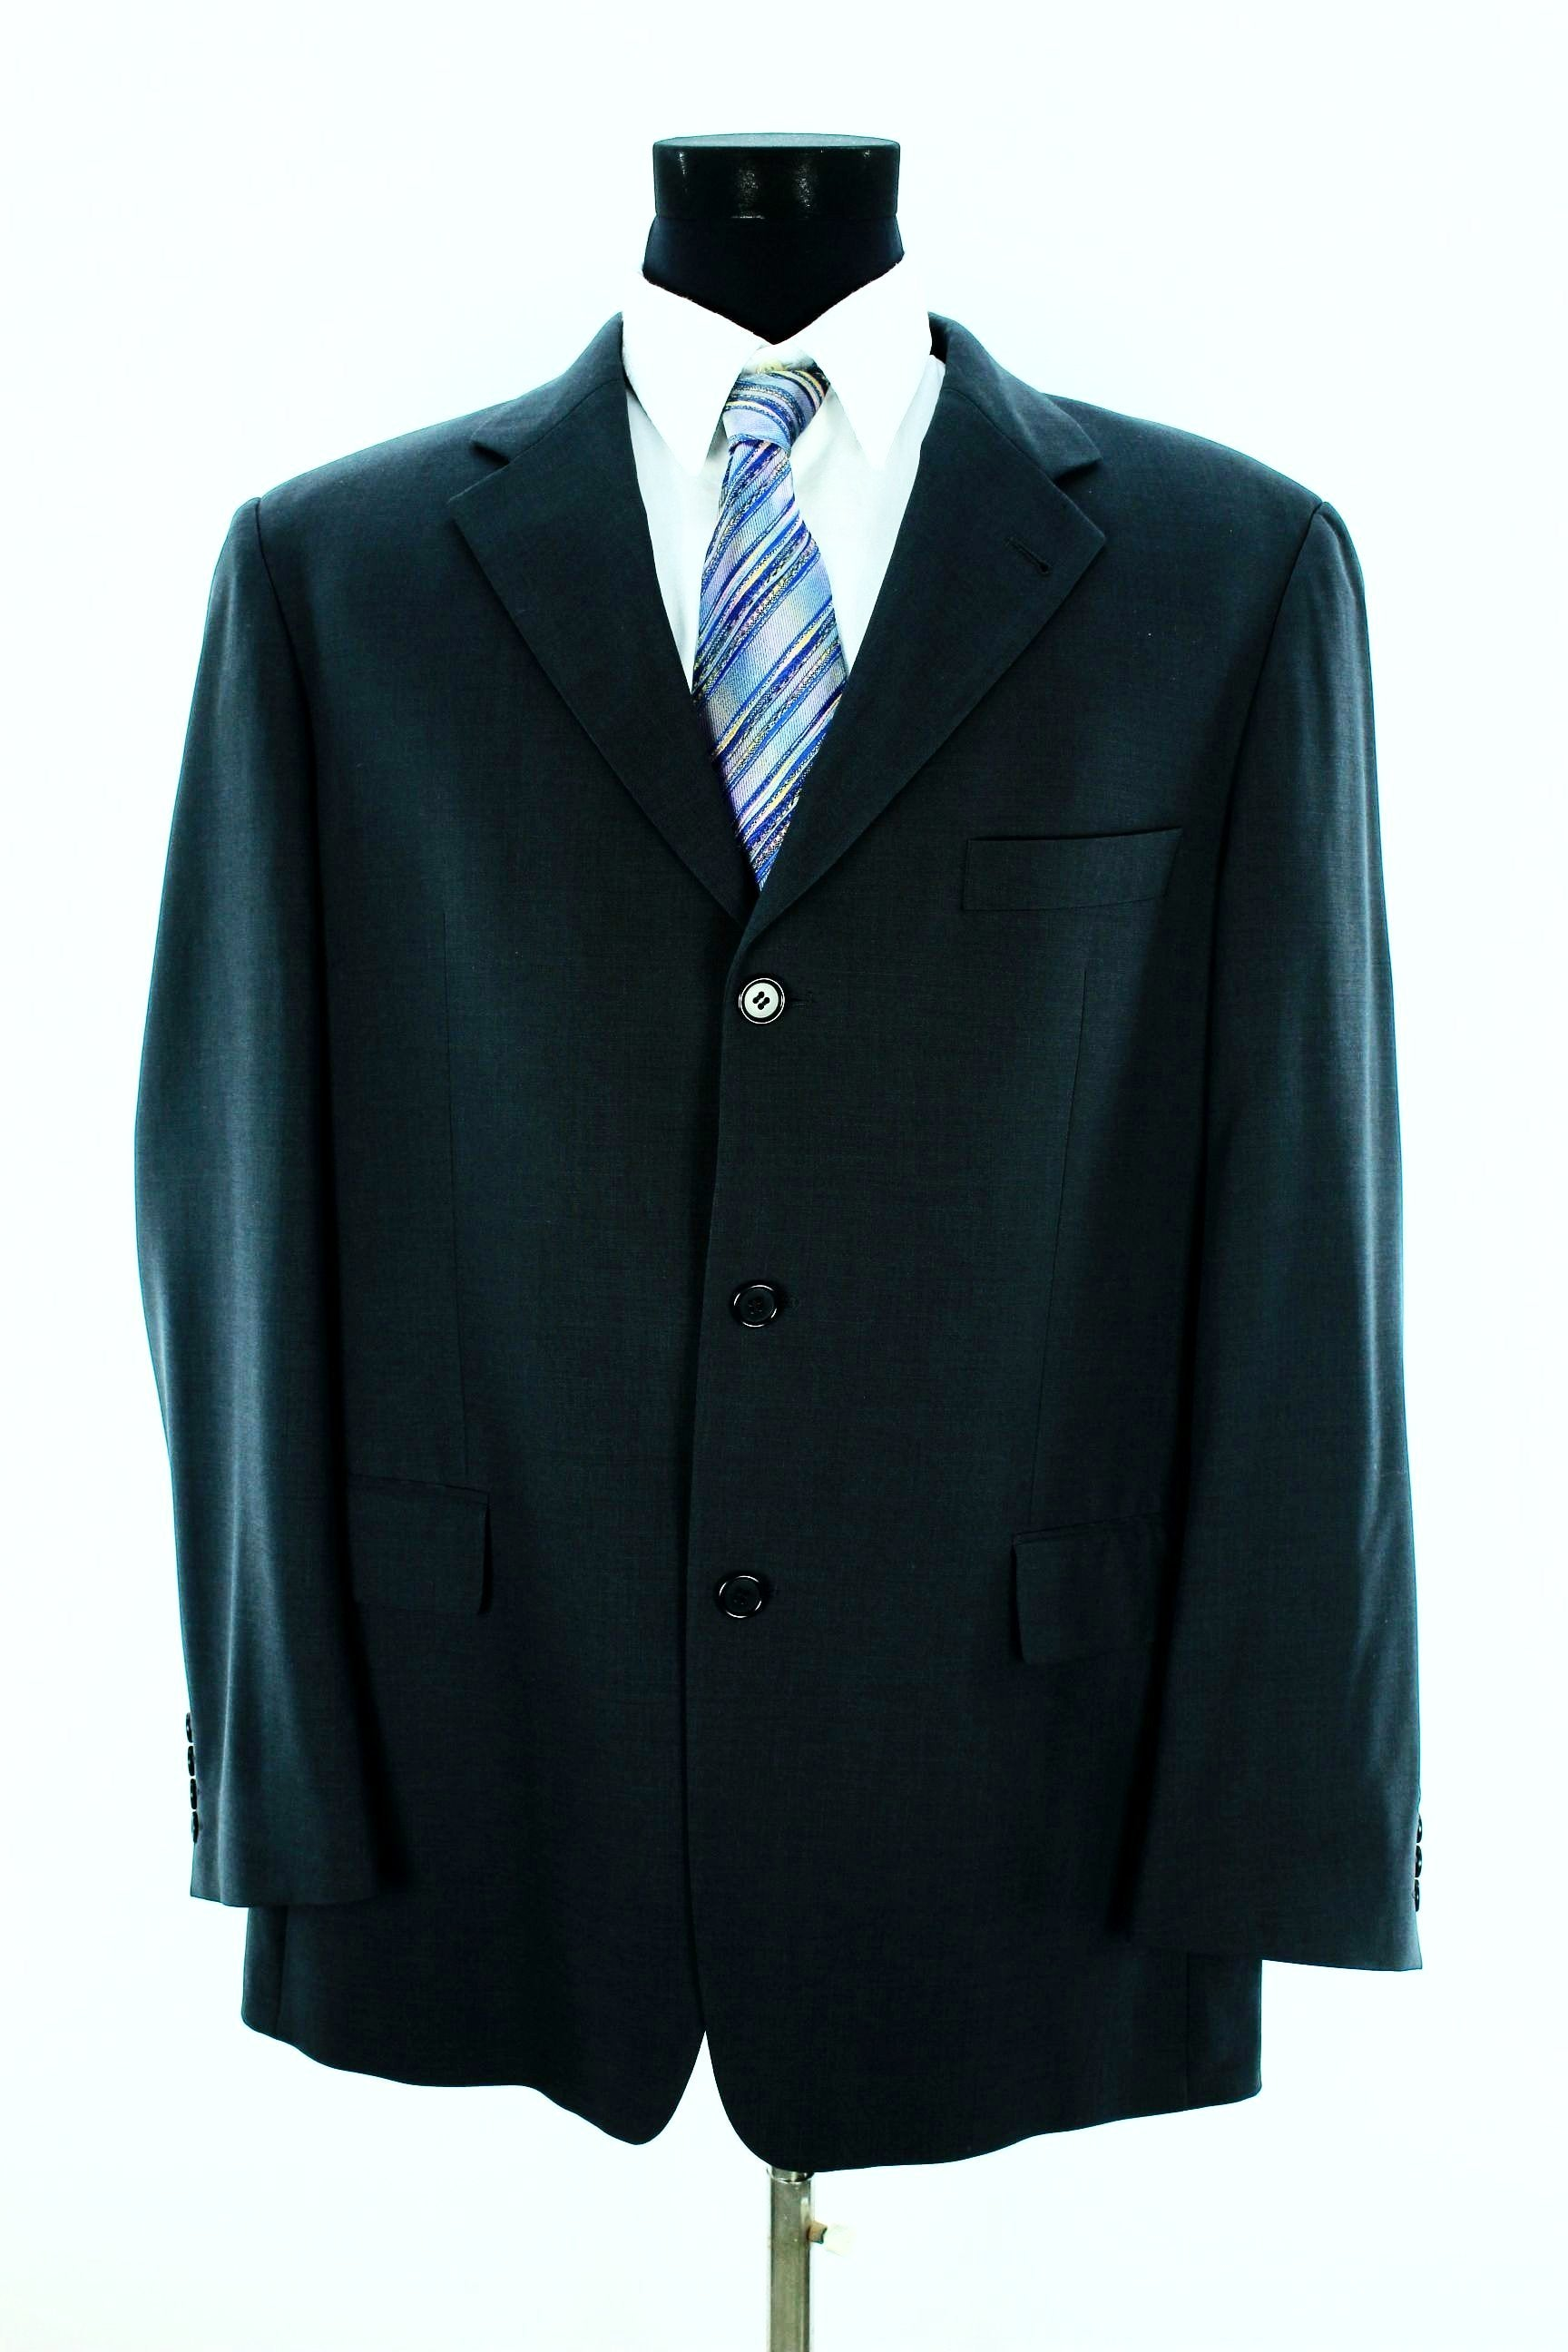 dbc9afb1 HUGO BOSS Men's Angelico Parma Blazer Size 52 Charcoal Black Virgin Wool